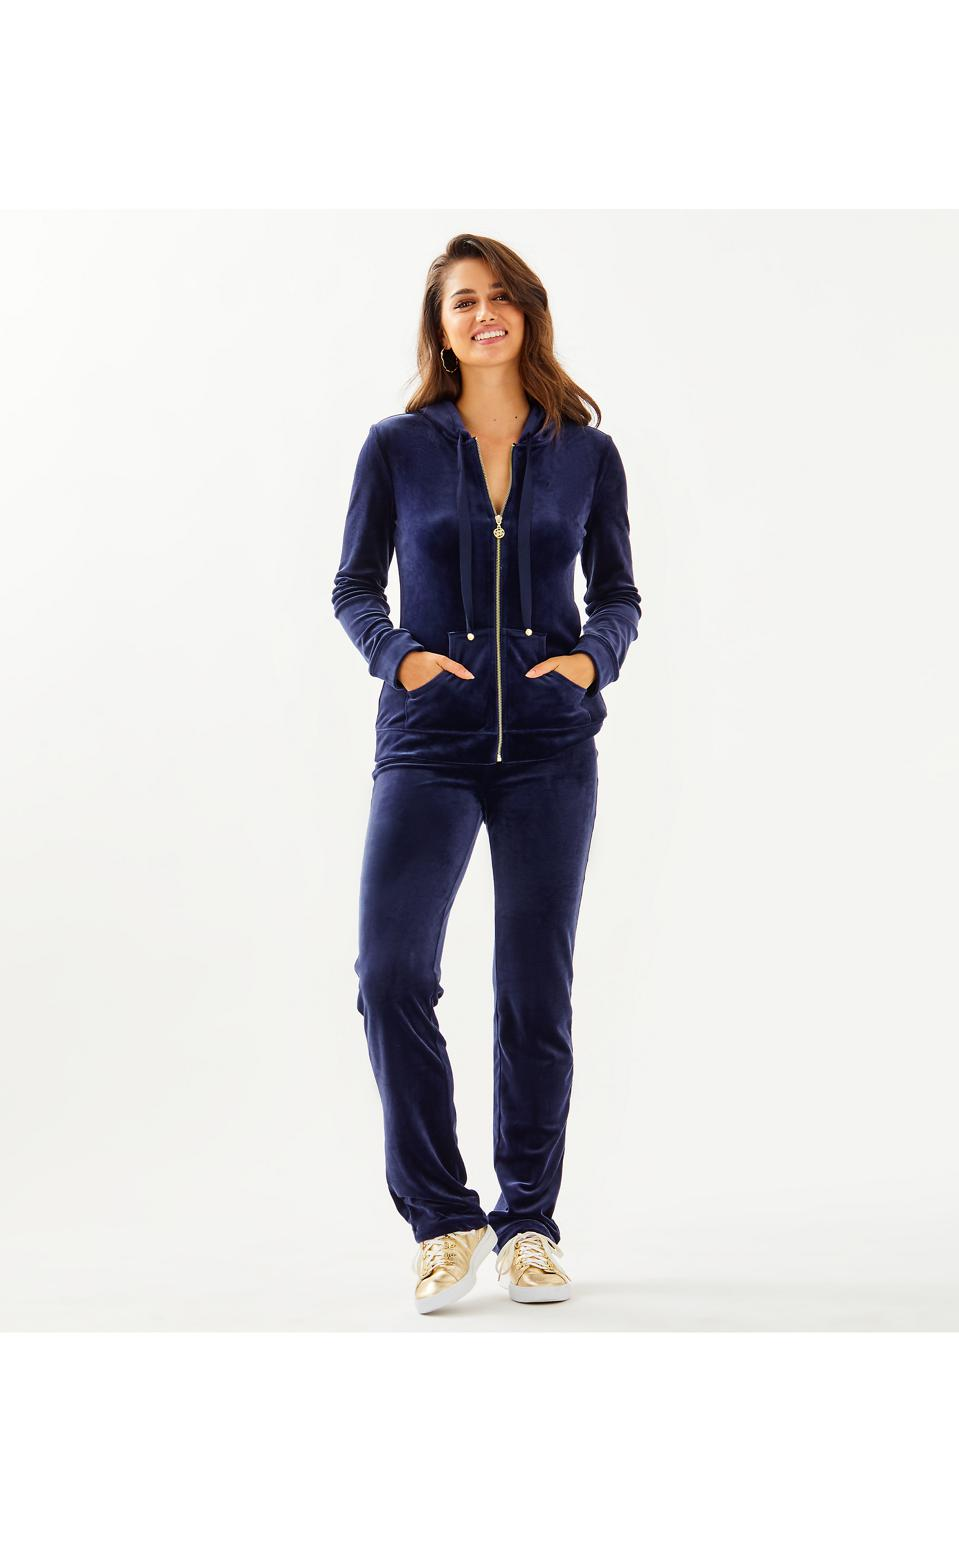 Lilly Pulitzer Larina Velour Zip-Up and Pant